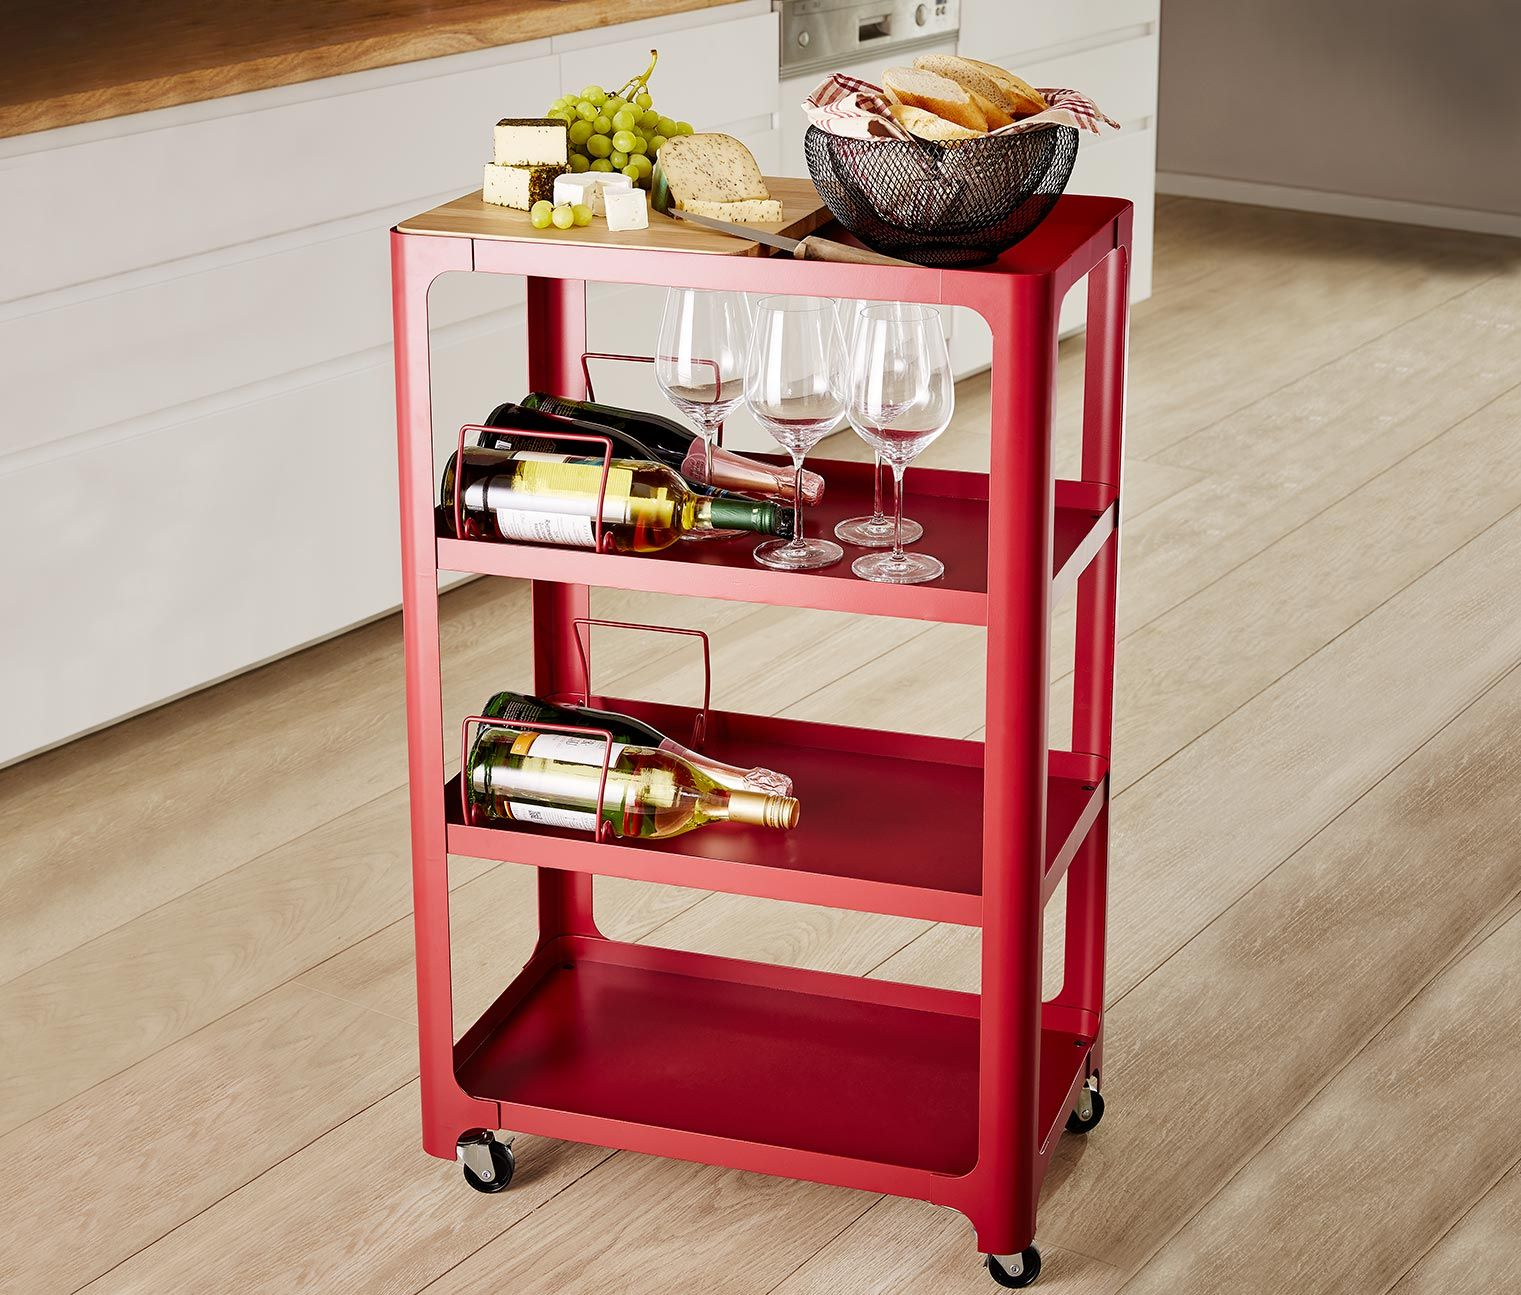 Servierwagen Kitchen Cart Home Decor Decor